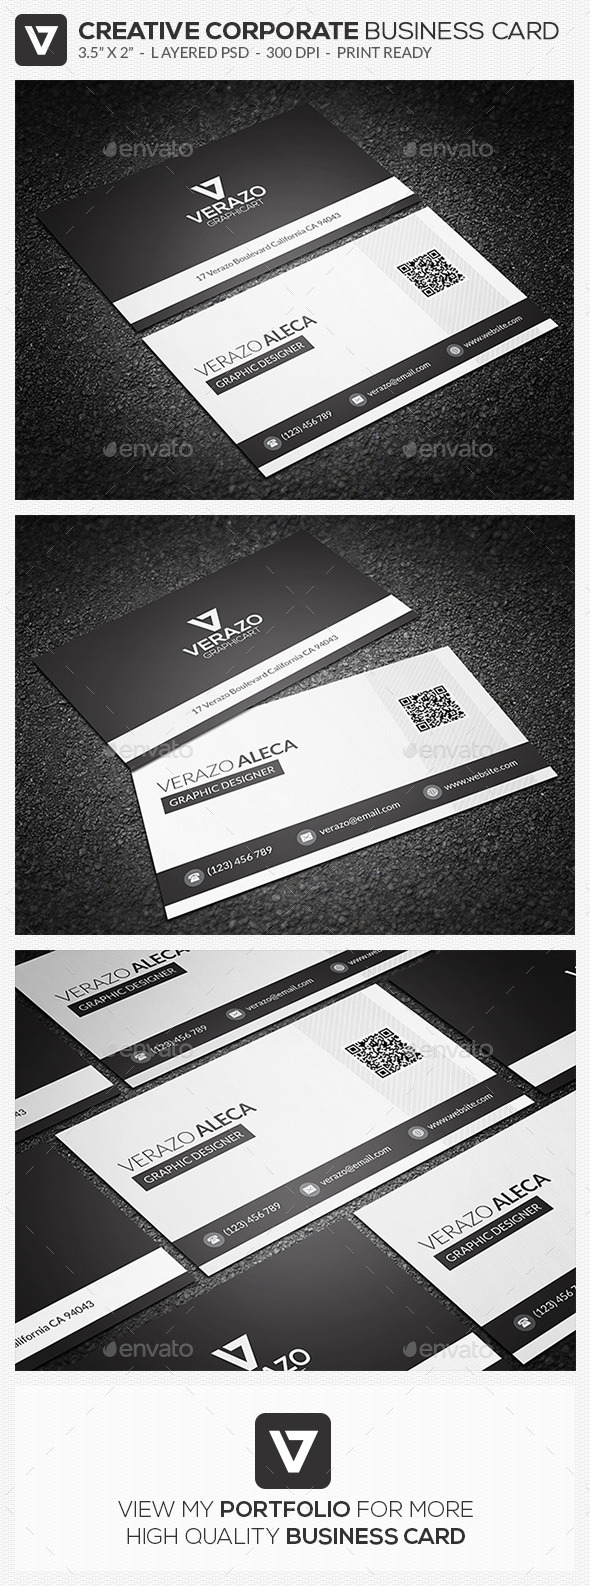 Clean Corporate Business Card 64 - Corporate Business Cards